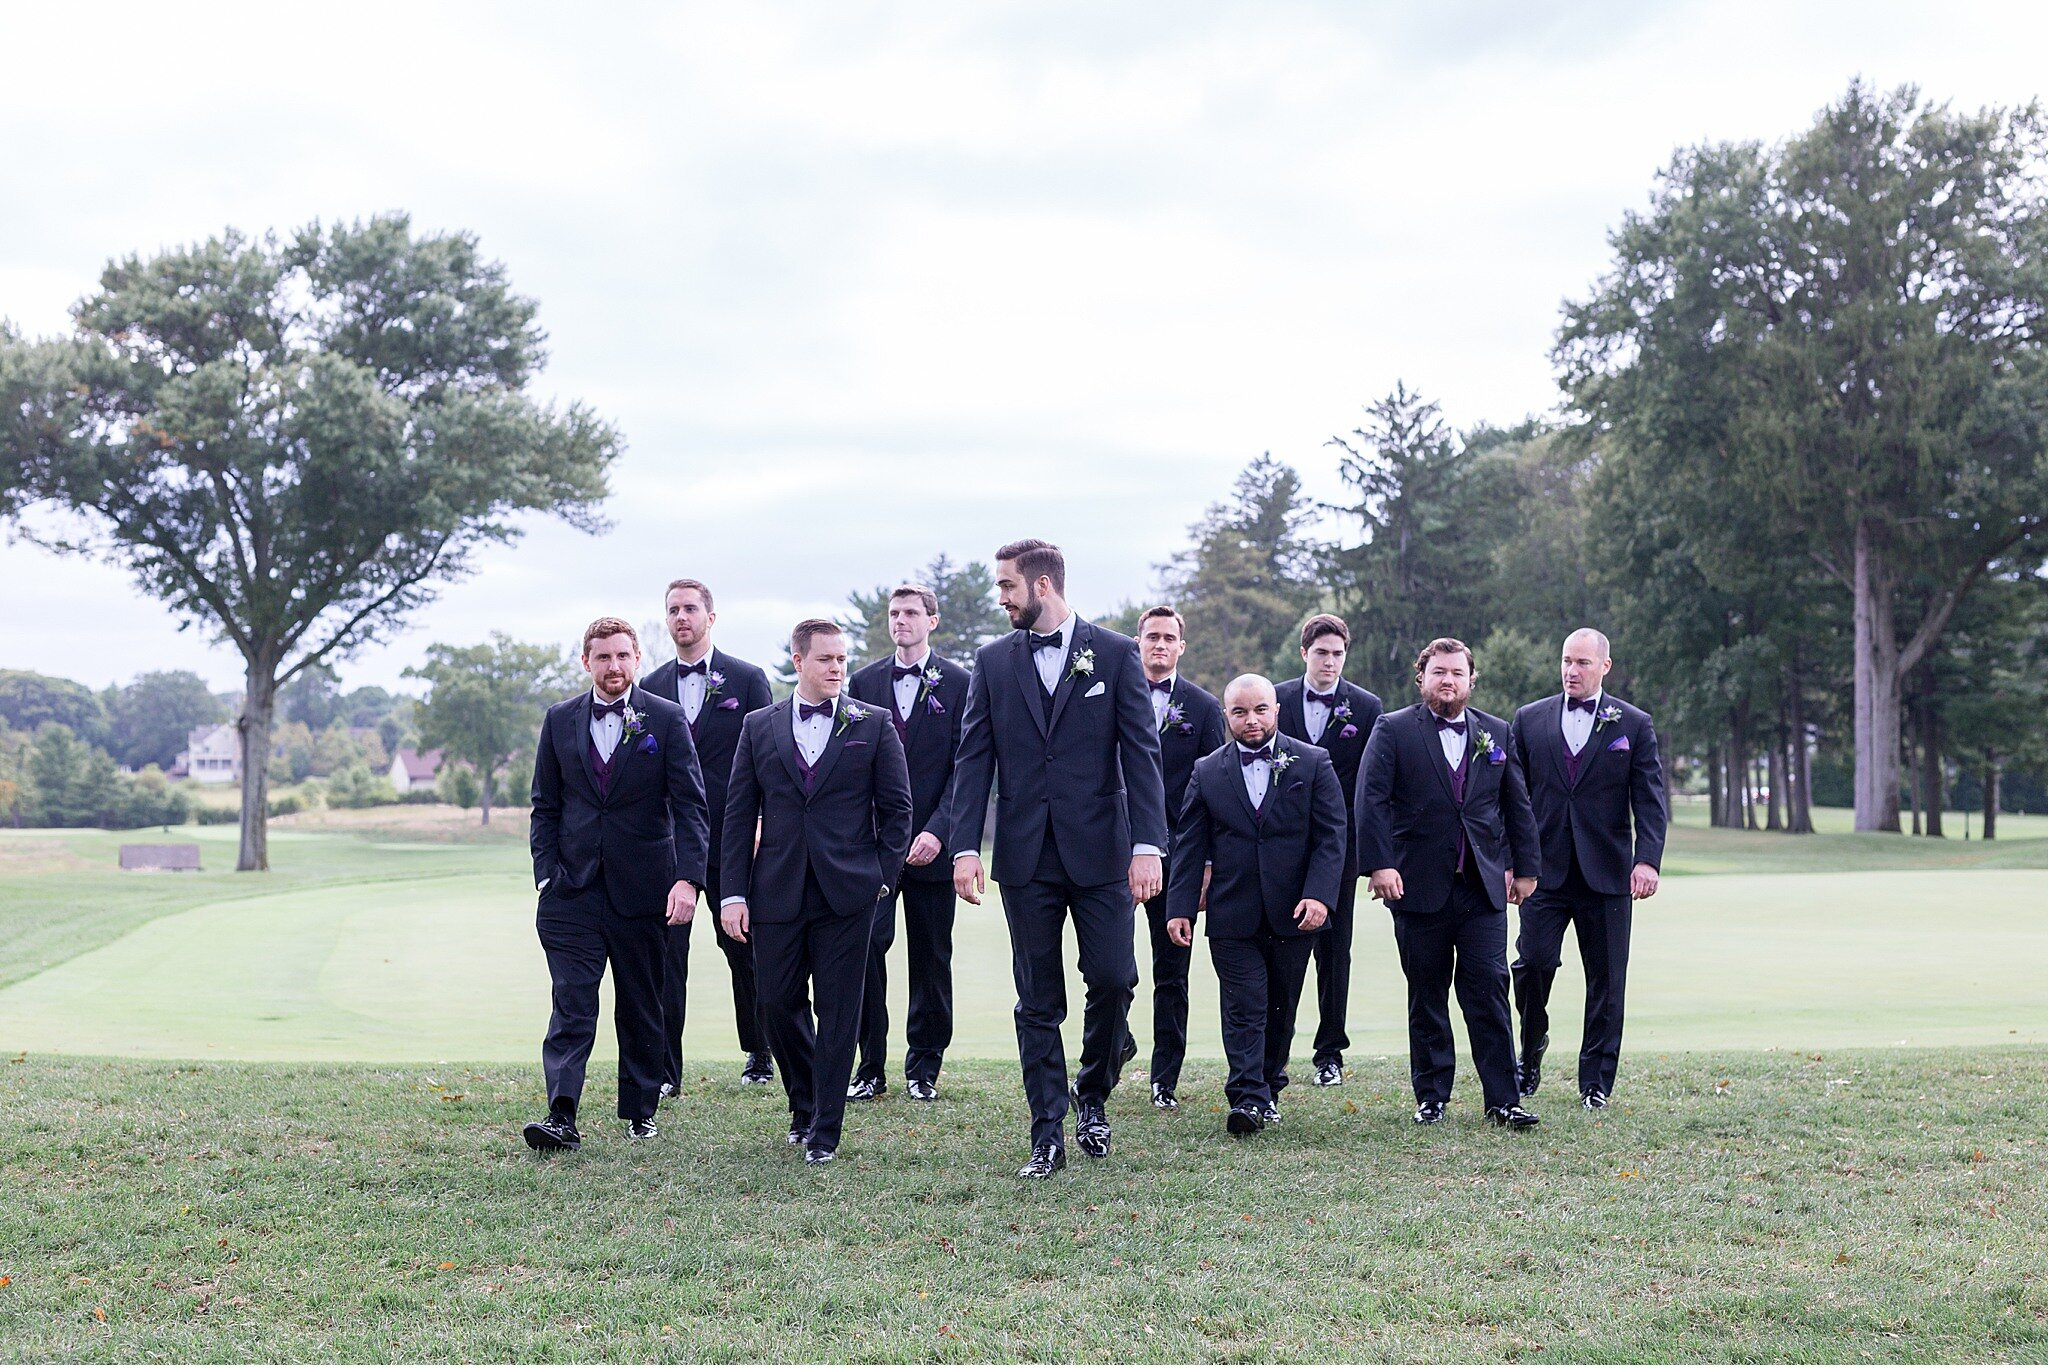 Aronimink golf Club Philadelphia Elegant Wedding Photogaphy_4033.jpg